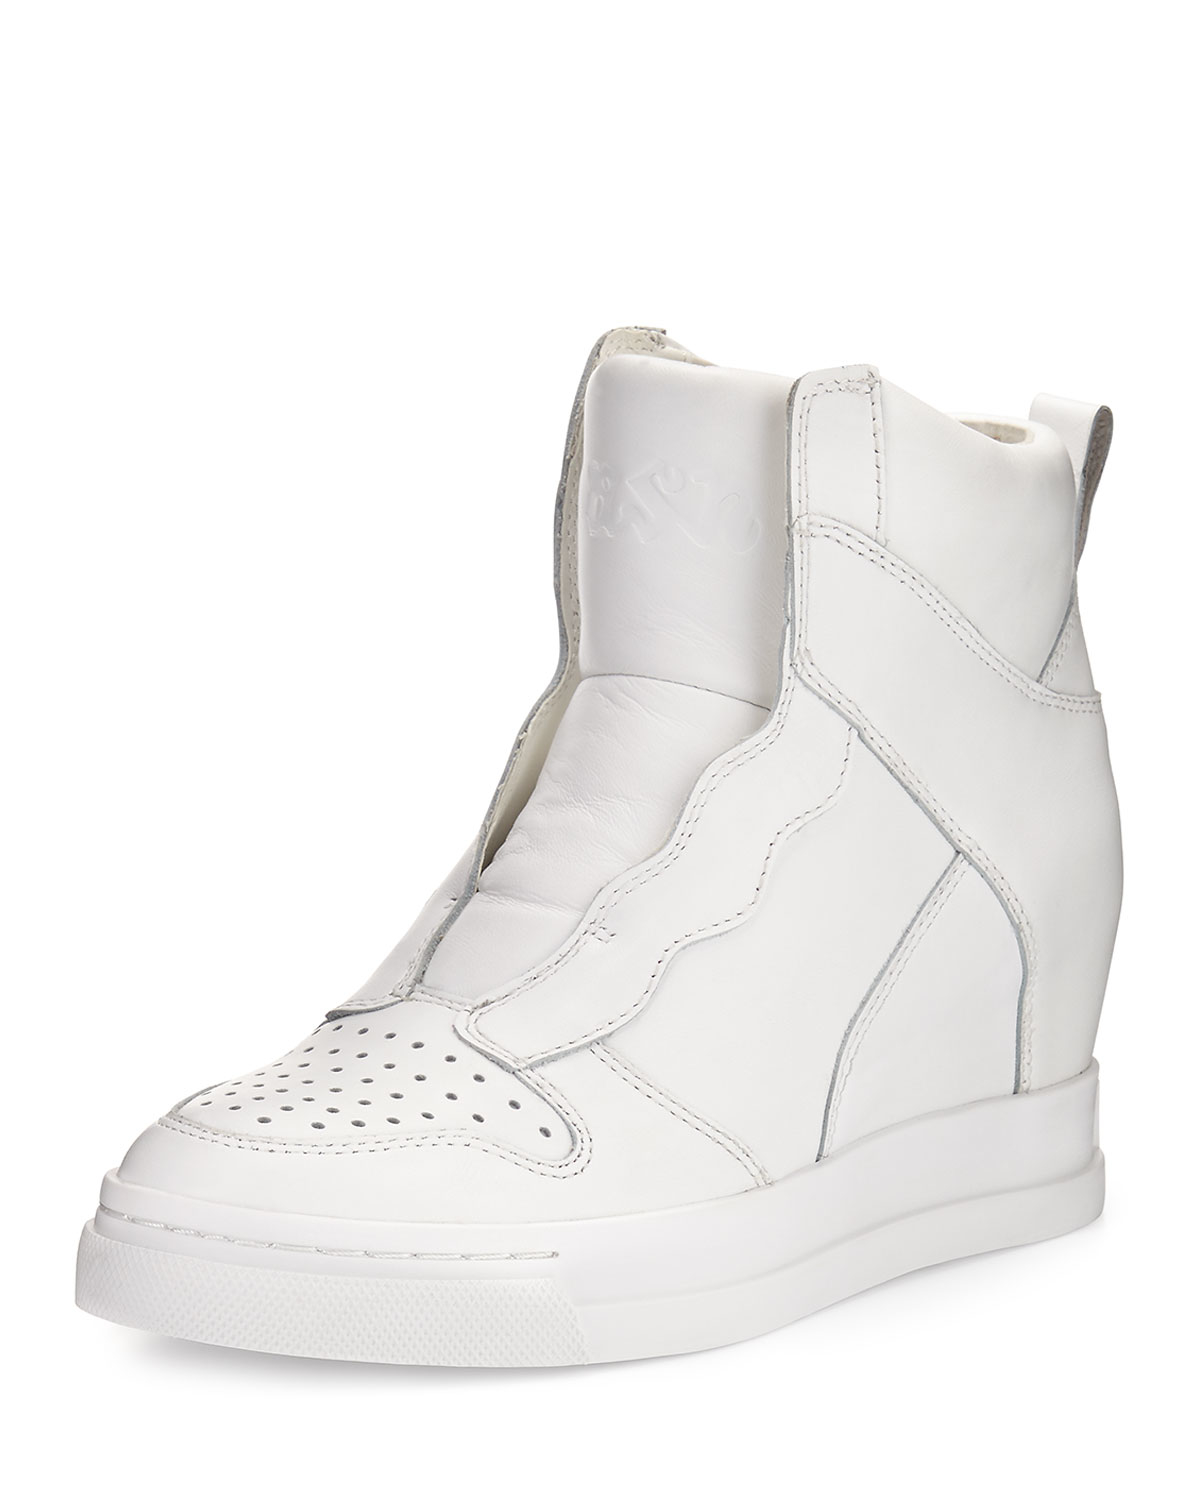 Lyst - Ash Clone Leather Hidden-wedge High-top Sneaker in White d312d6fb1